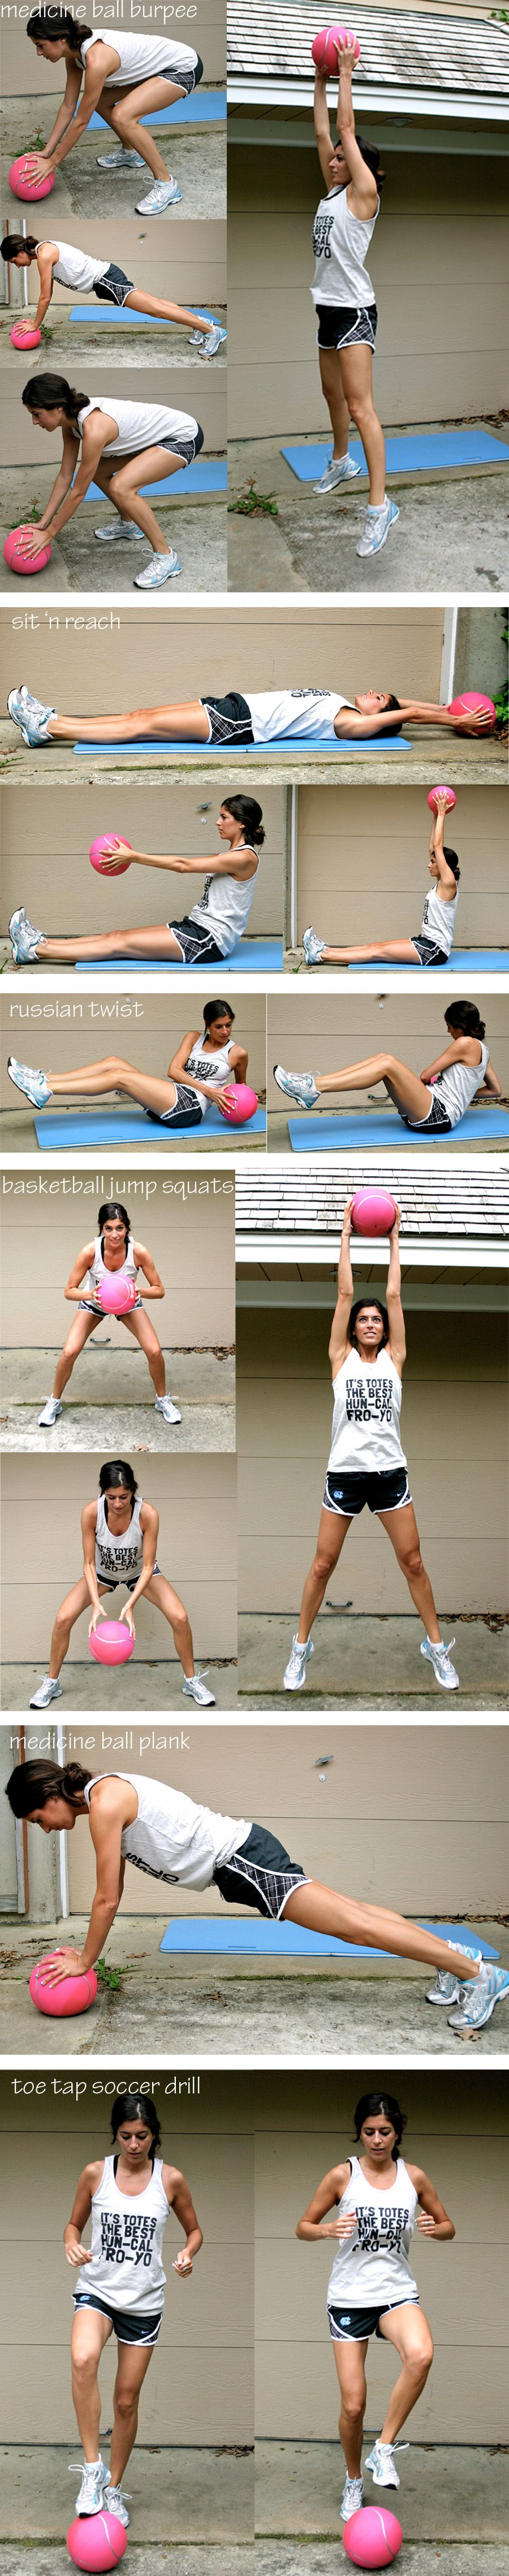 Medicine ball interval workout. I really want her shirt too!